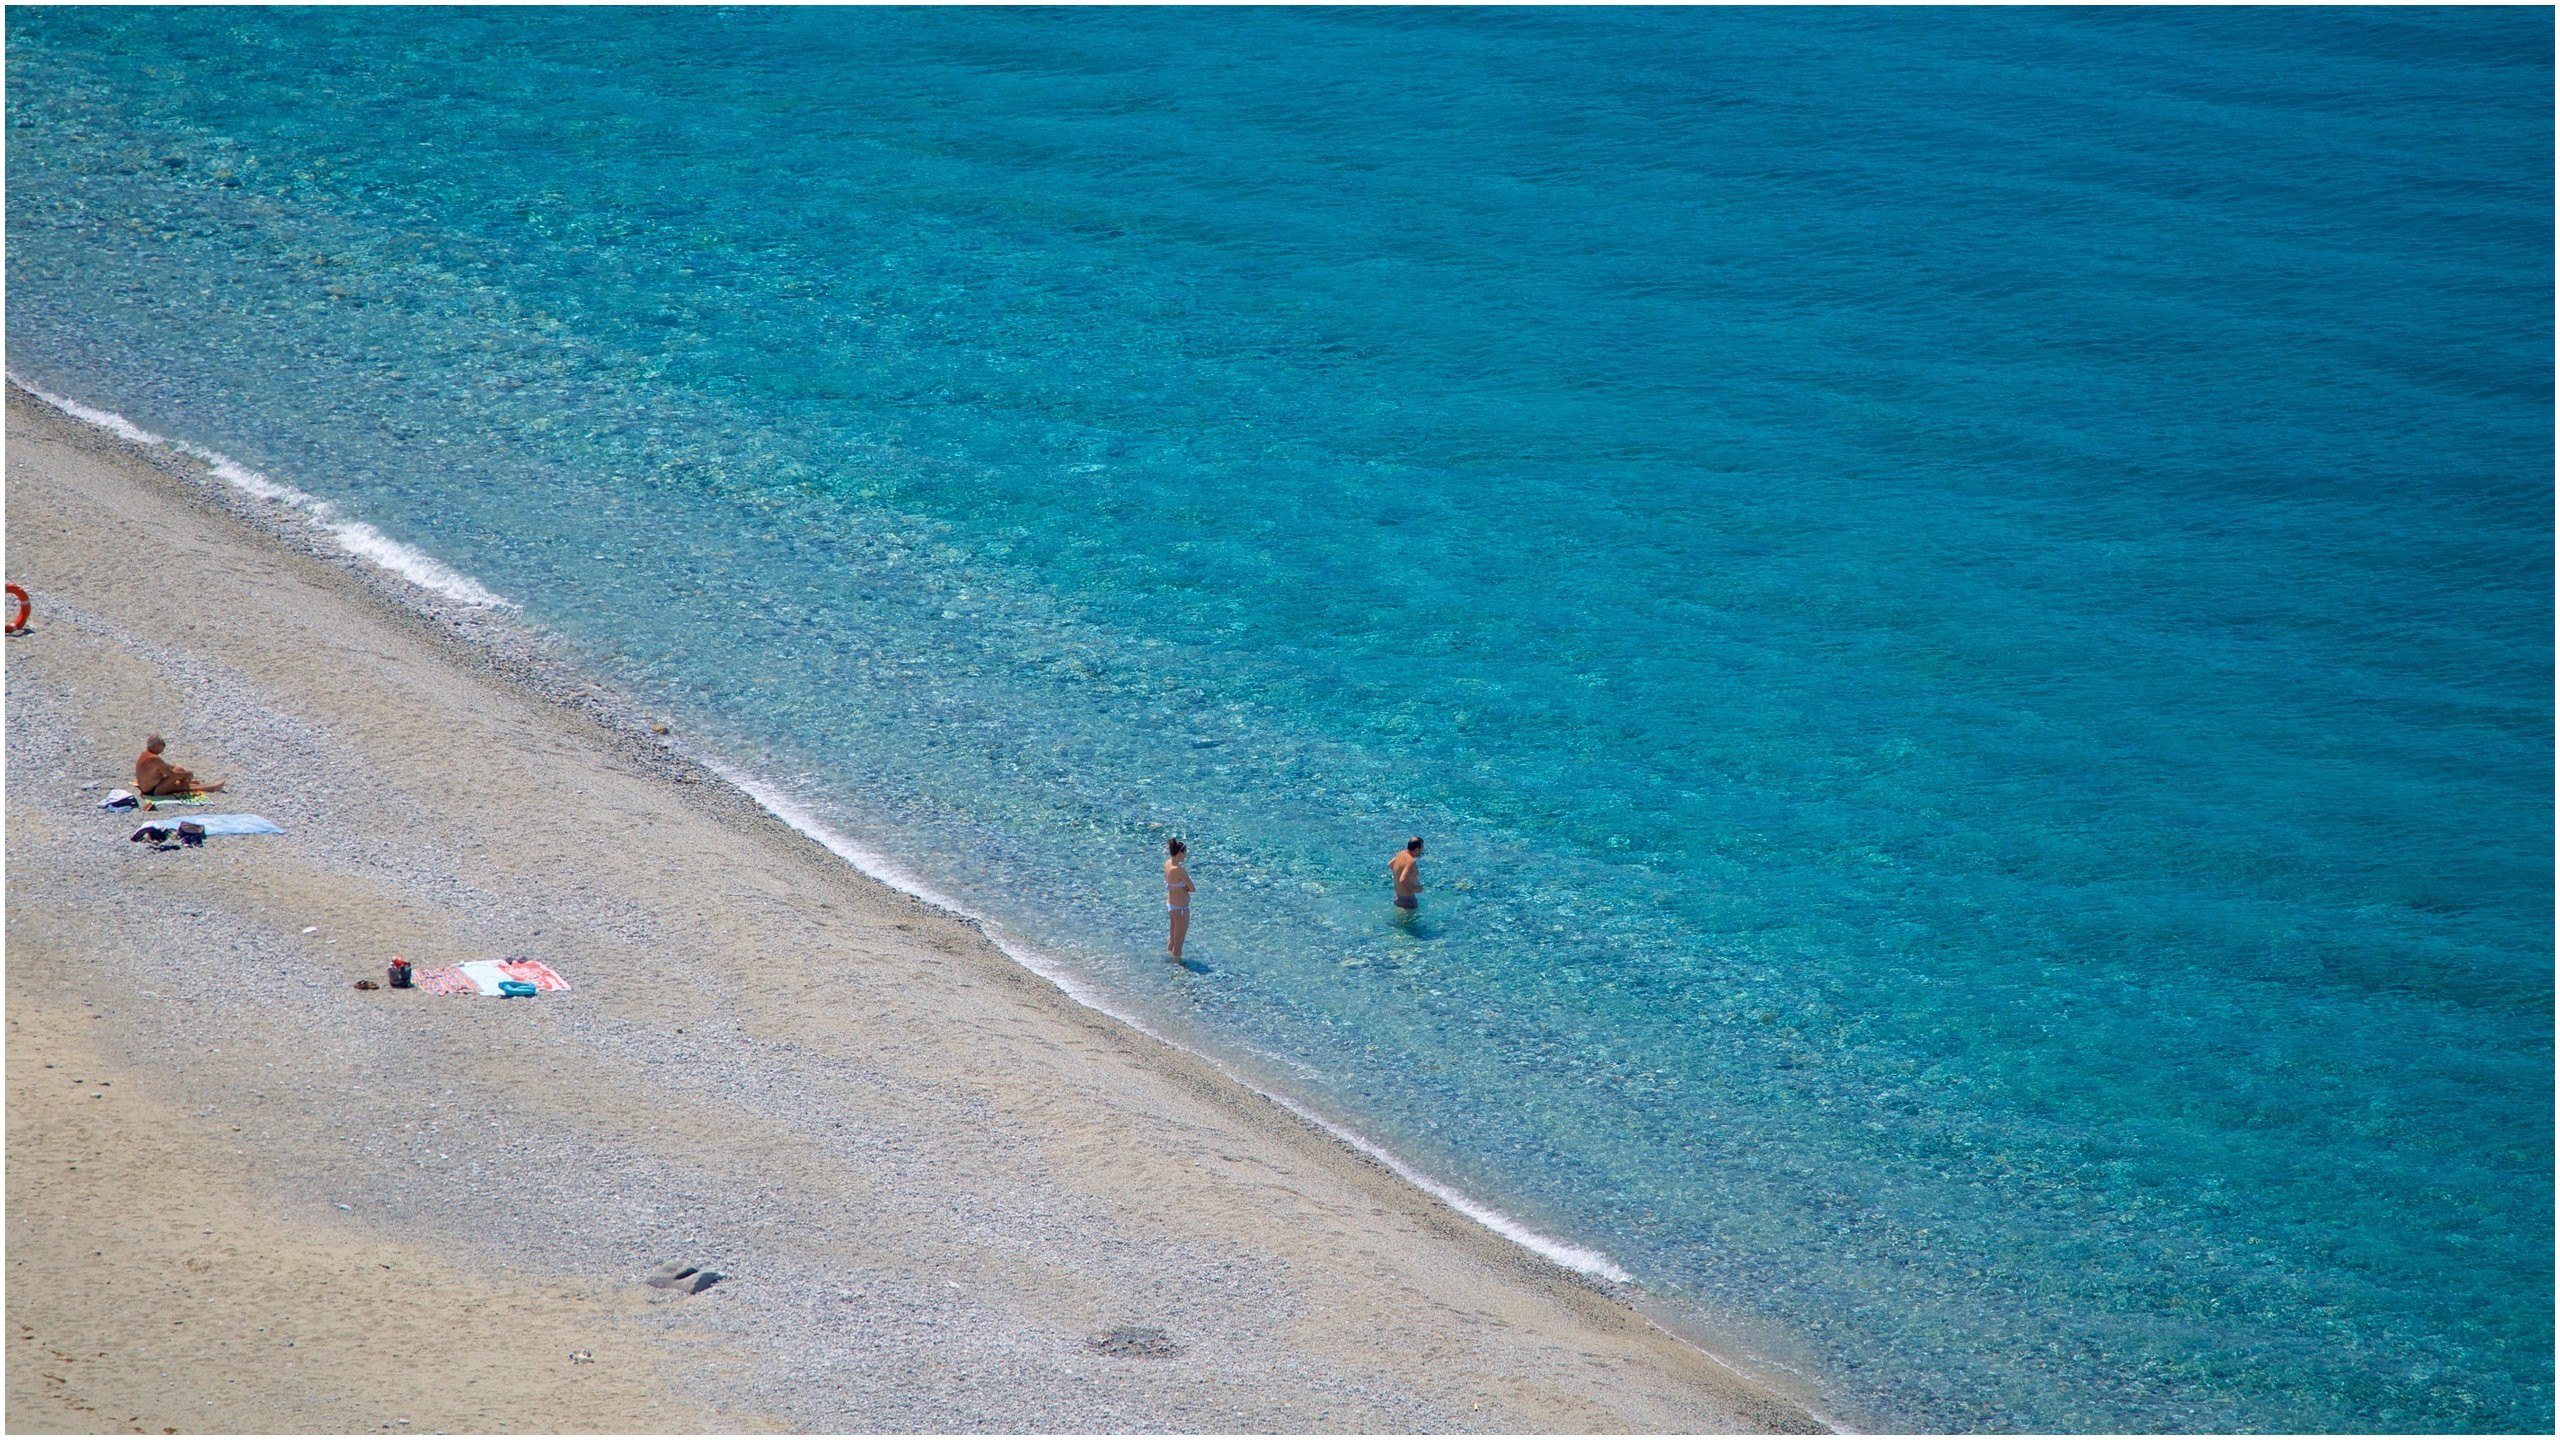 Top 10 Reggio di Calabria [state abbreviation] Beach Hotels & Resorts in 2019